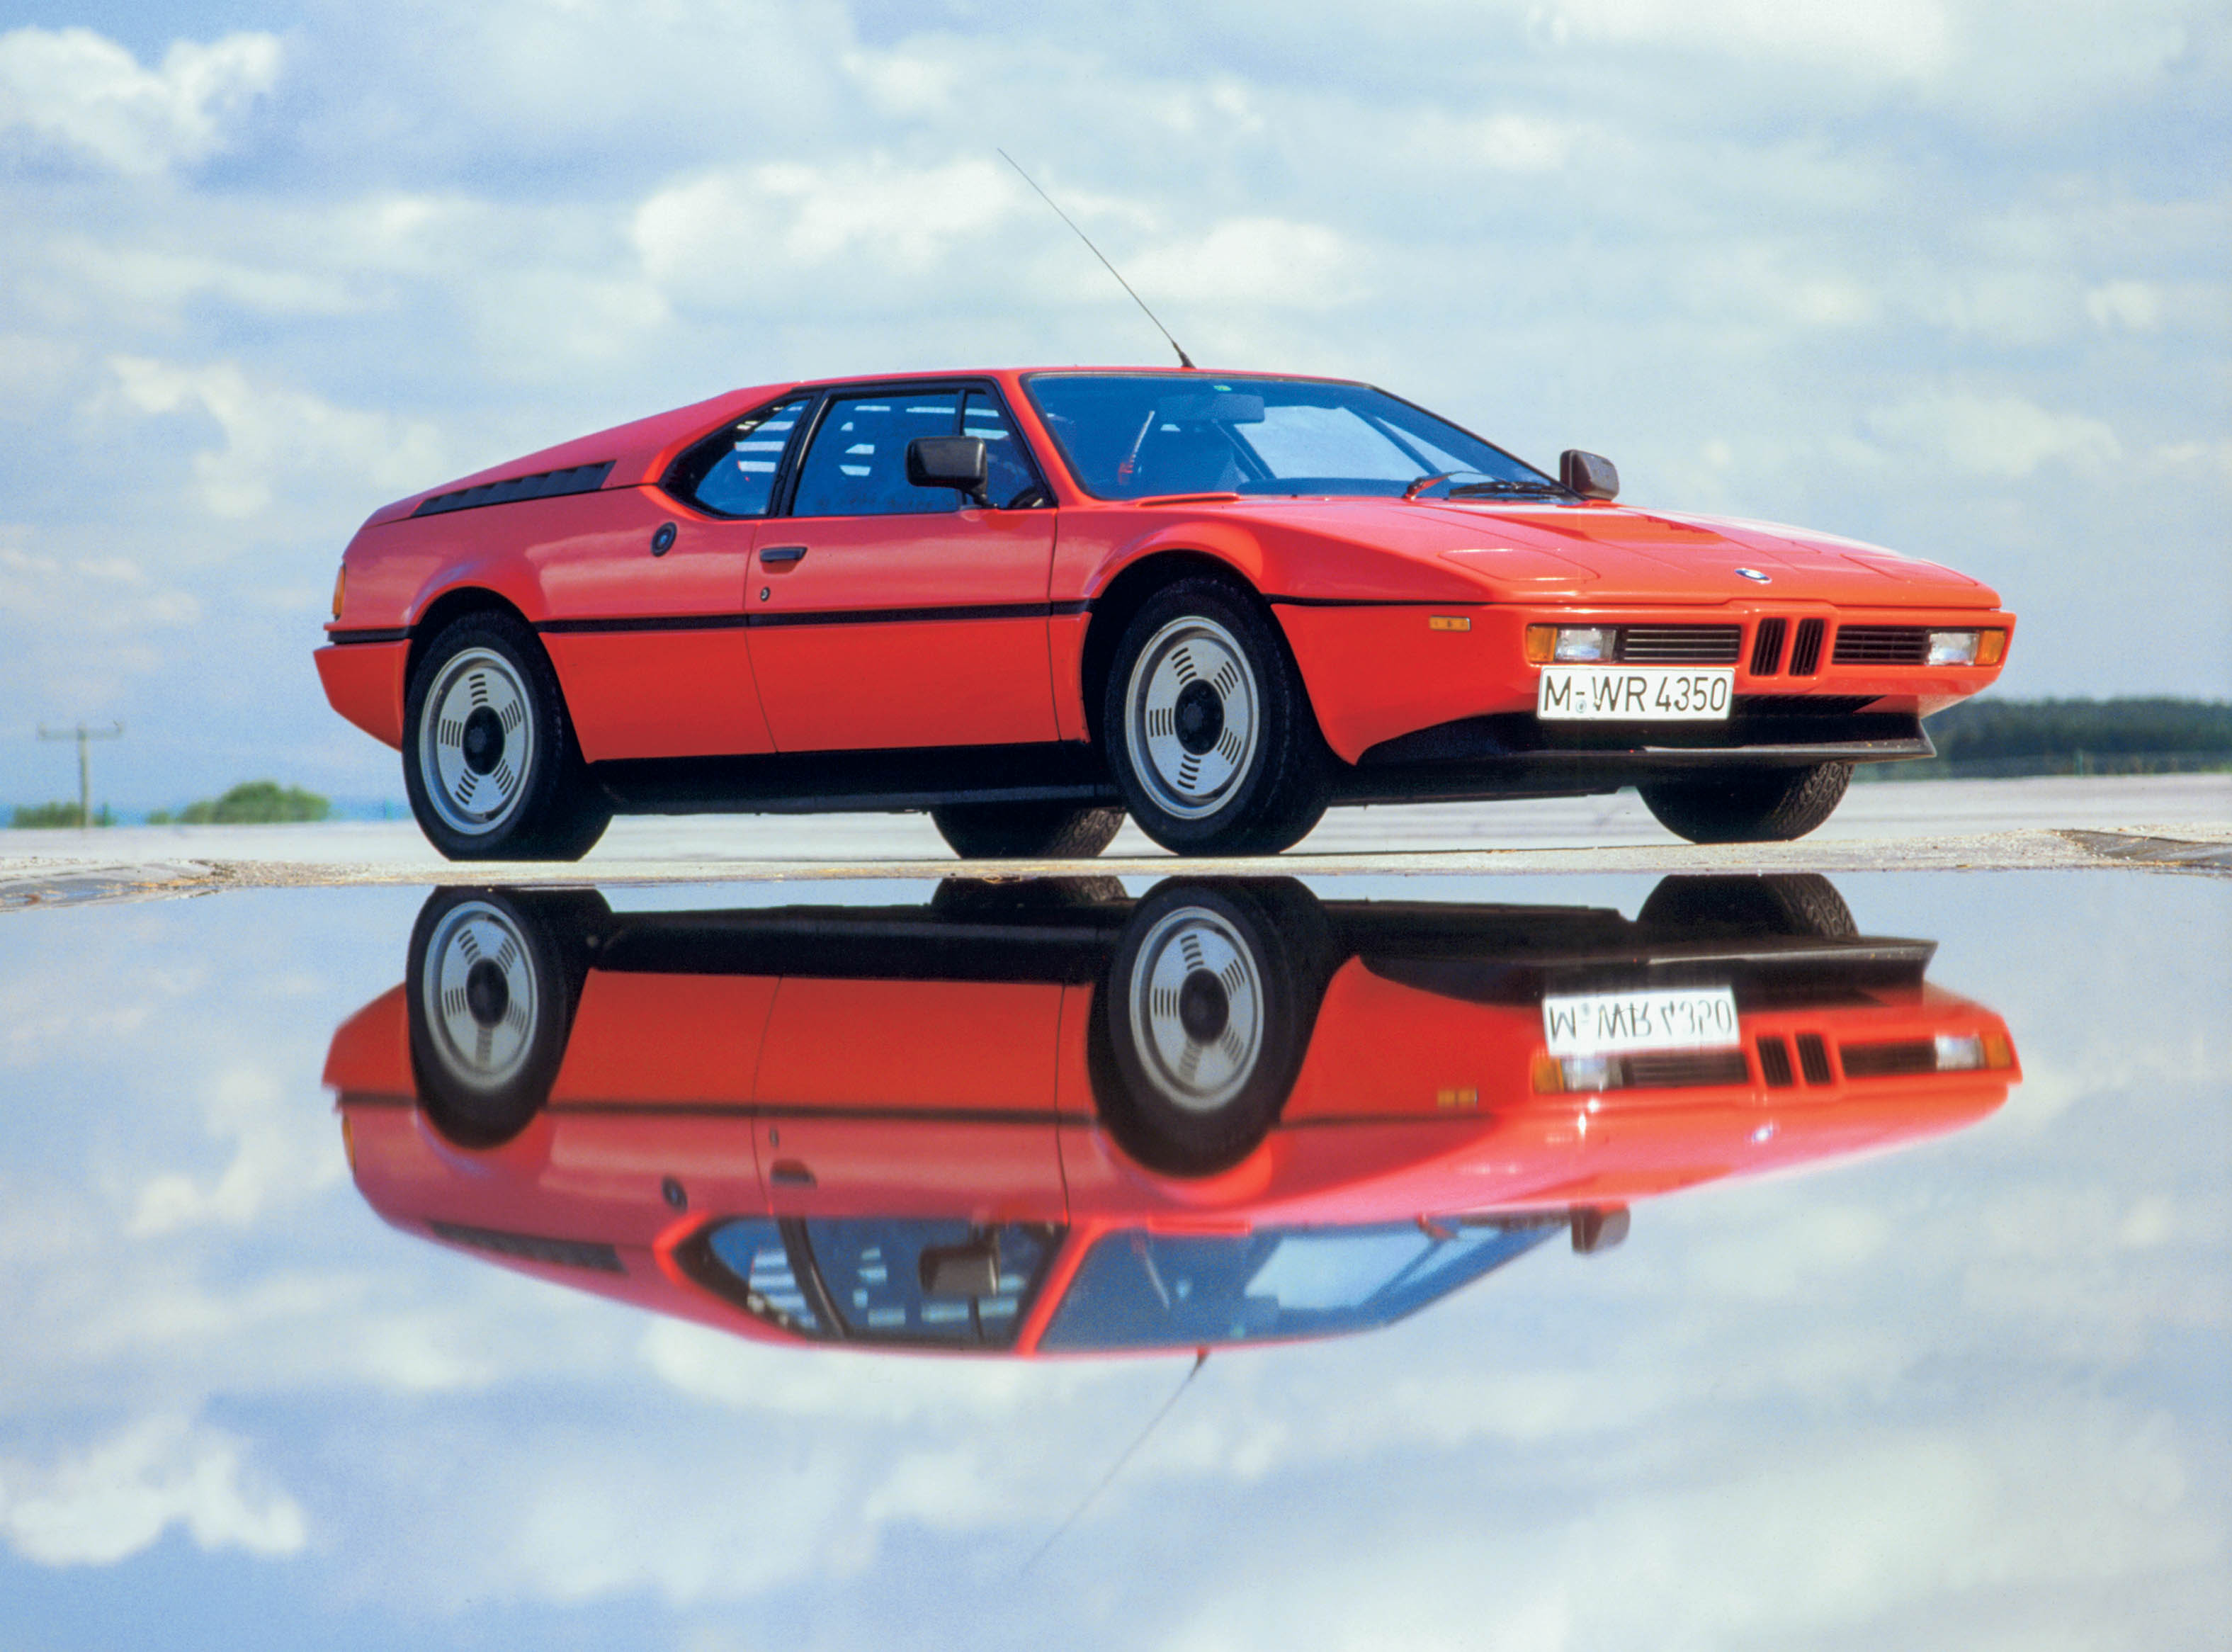 BMW M1 low 3/4 passenger reflection